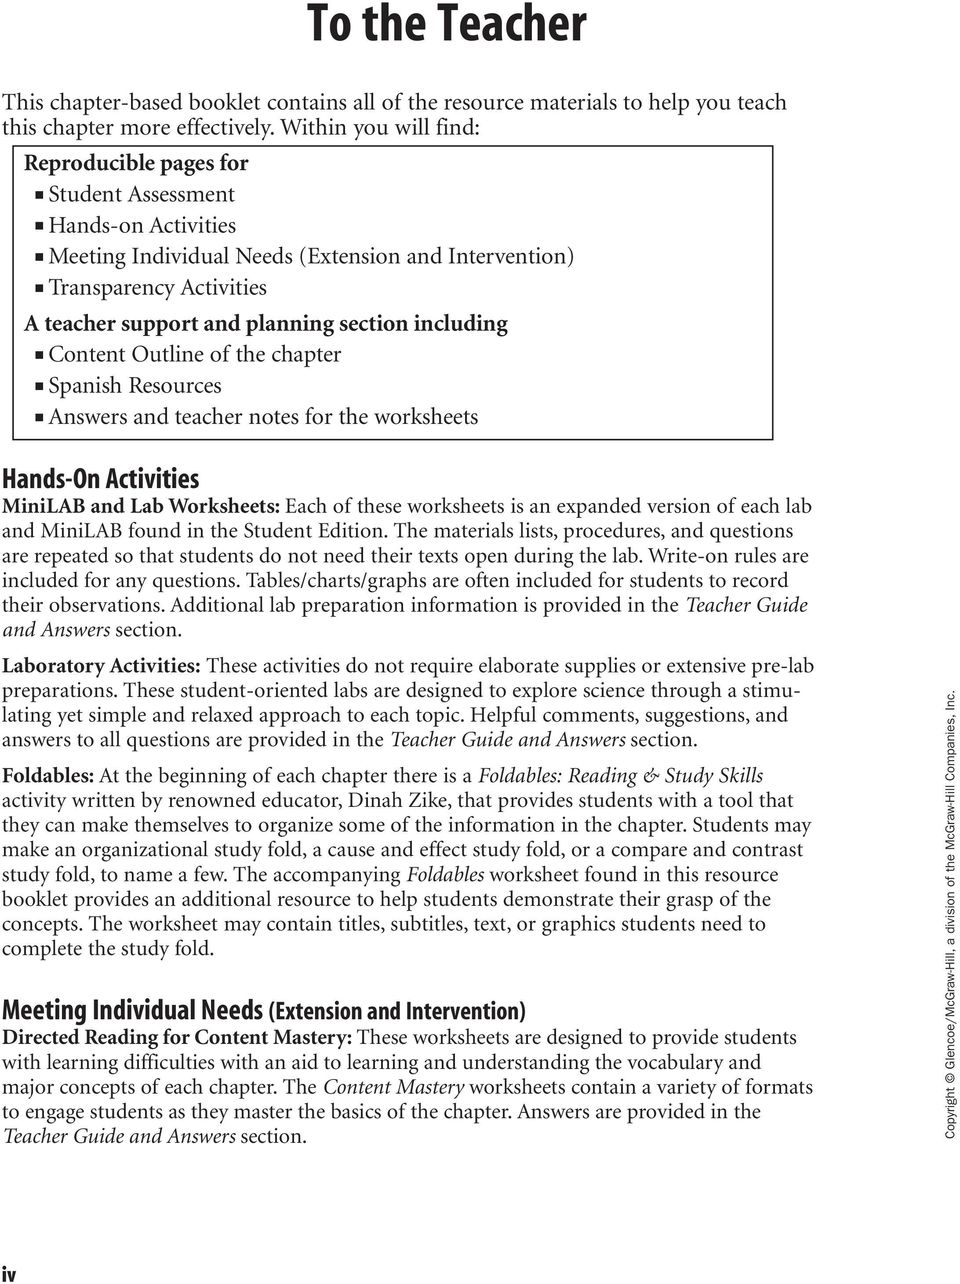 Worksheets The Mcgraw-hill Companies Worksheet Answers the mcgraw hill companies worksheet answers livinghealthybulletin lab worksheets for each student edition activity laboratory